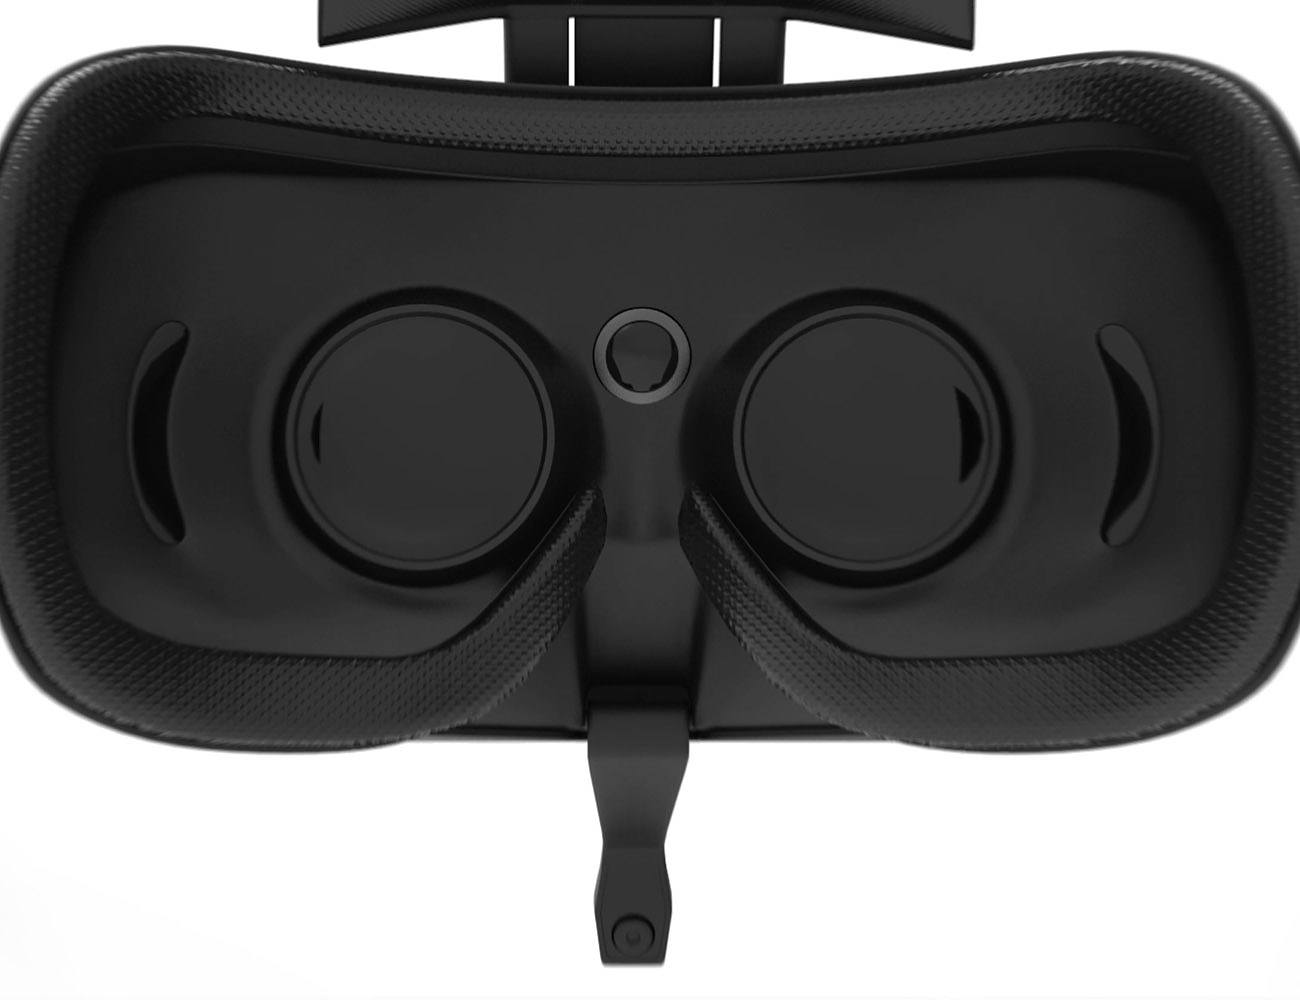 Veeso – The First Face-Tracking Virtual Reality Headset